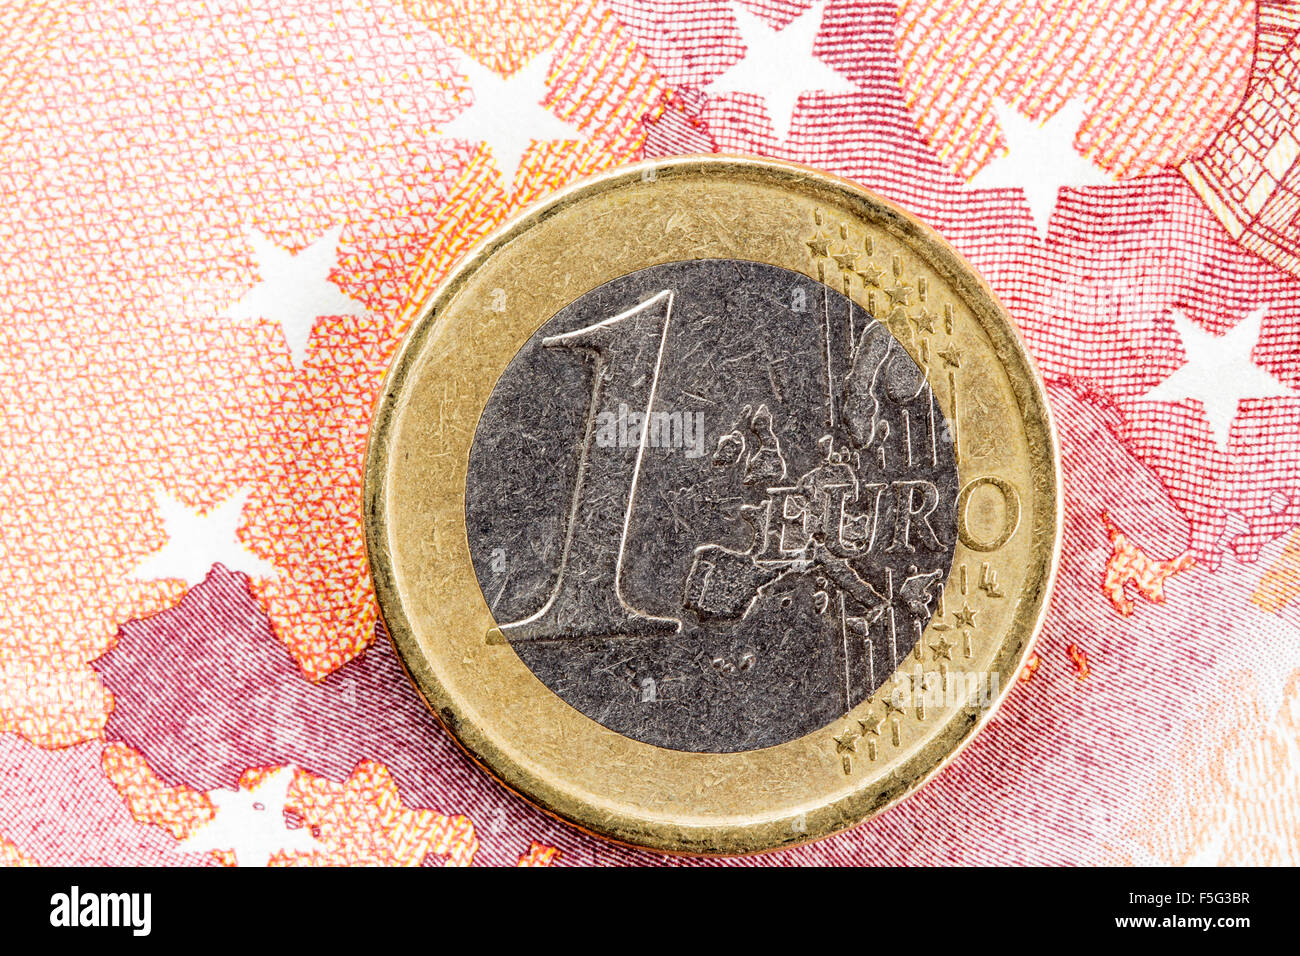 Detail of one euro coin on red ten euro banknote background - Stock Image